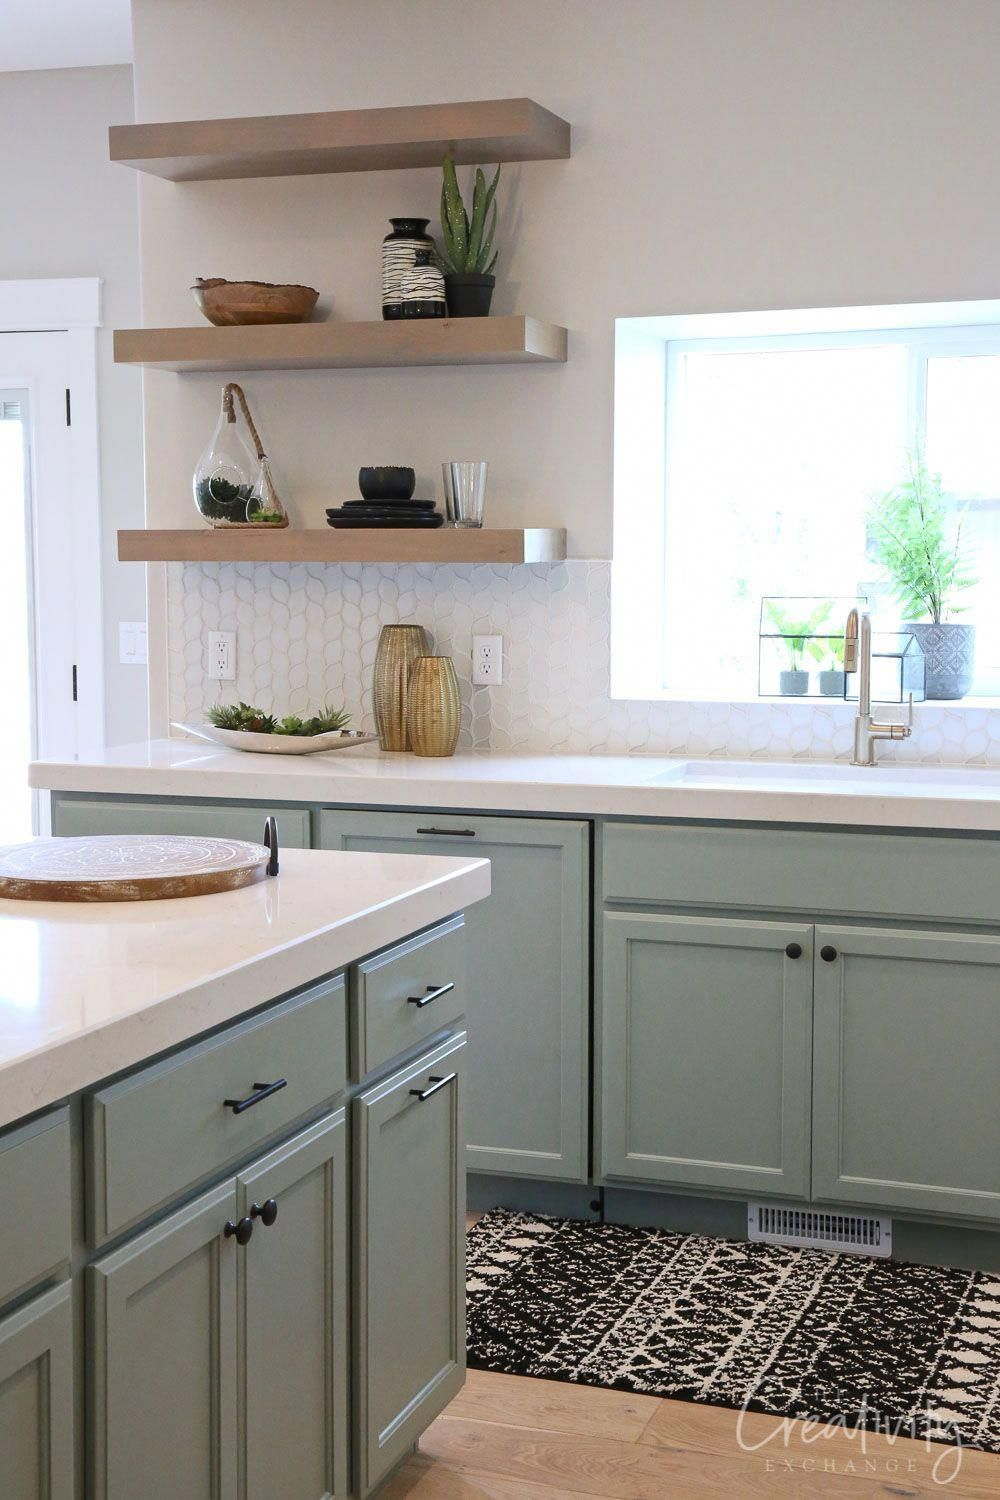 Using The Experts For Kitchen Renovations Kitchen Renovation New Kitchen Cabinets Country Kitchen Decor